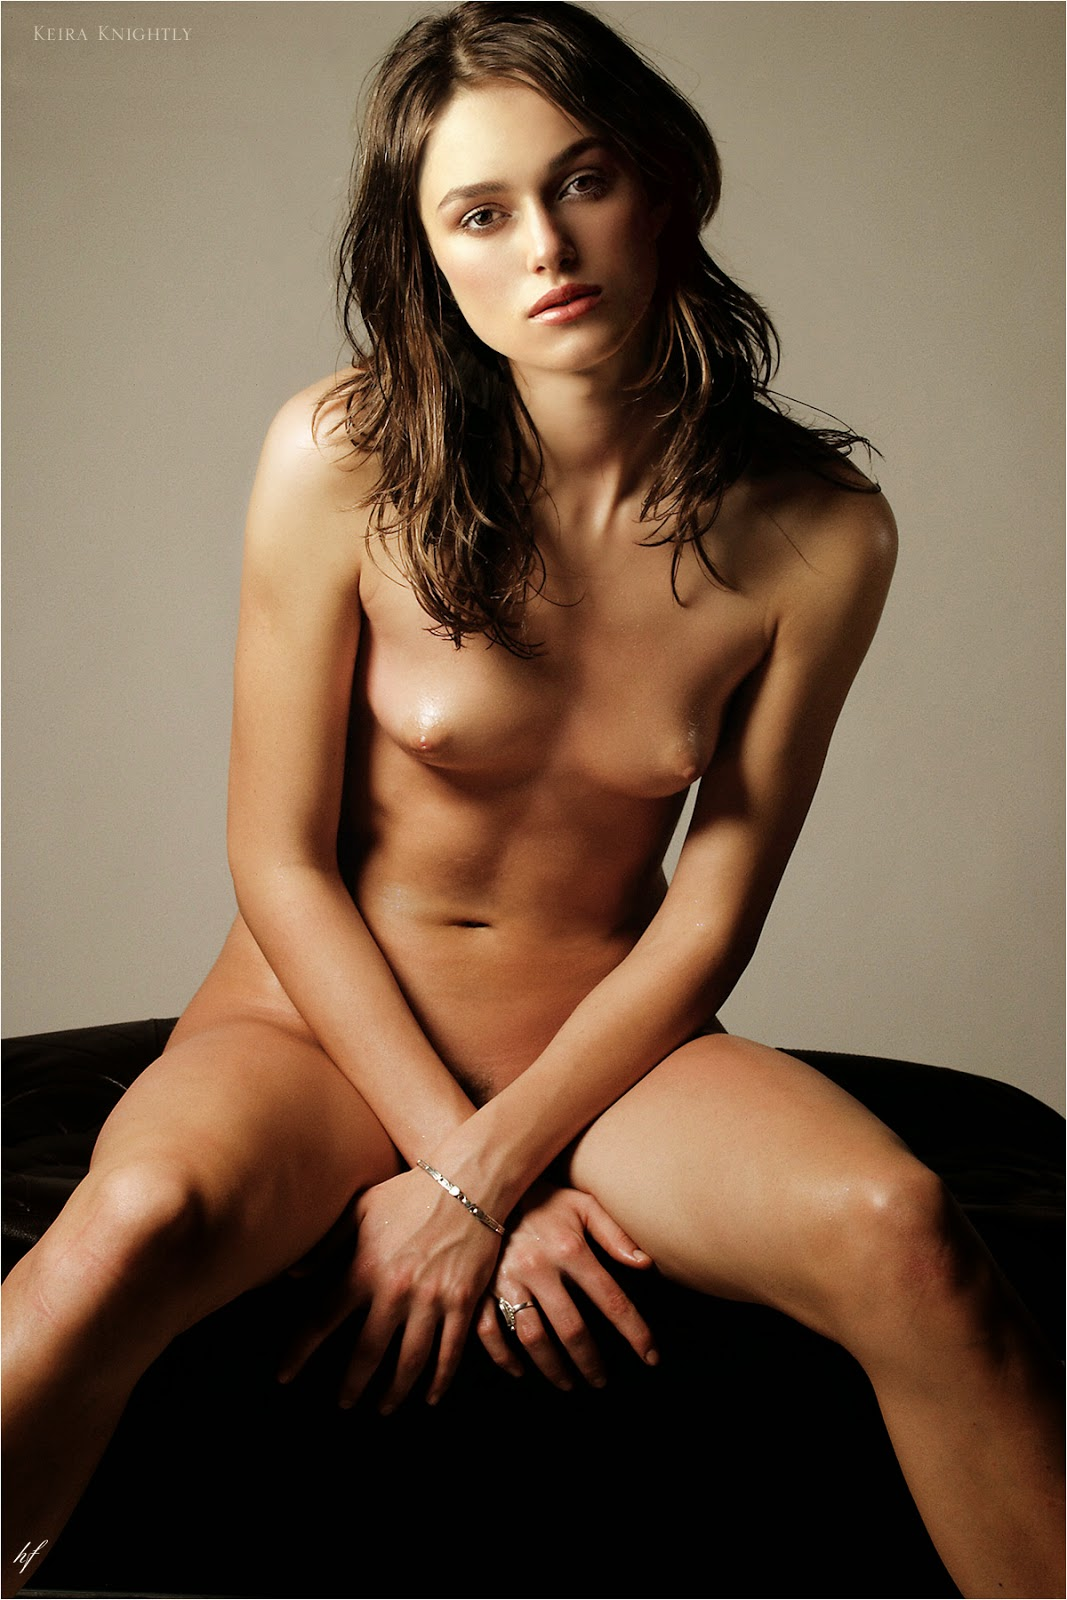 Knightley atonement keira nude for that